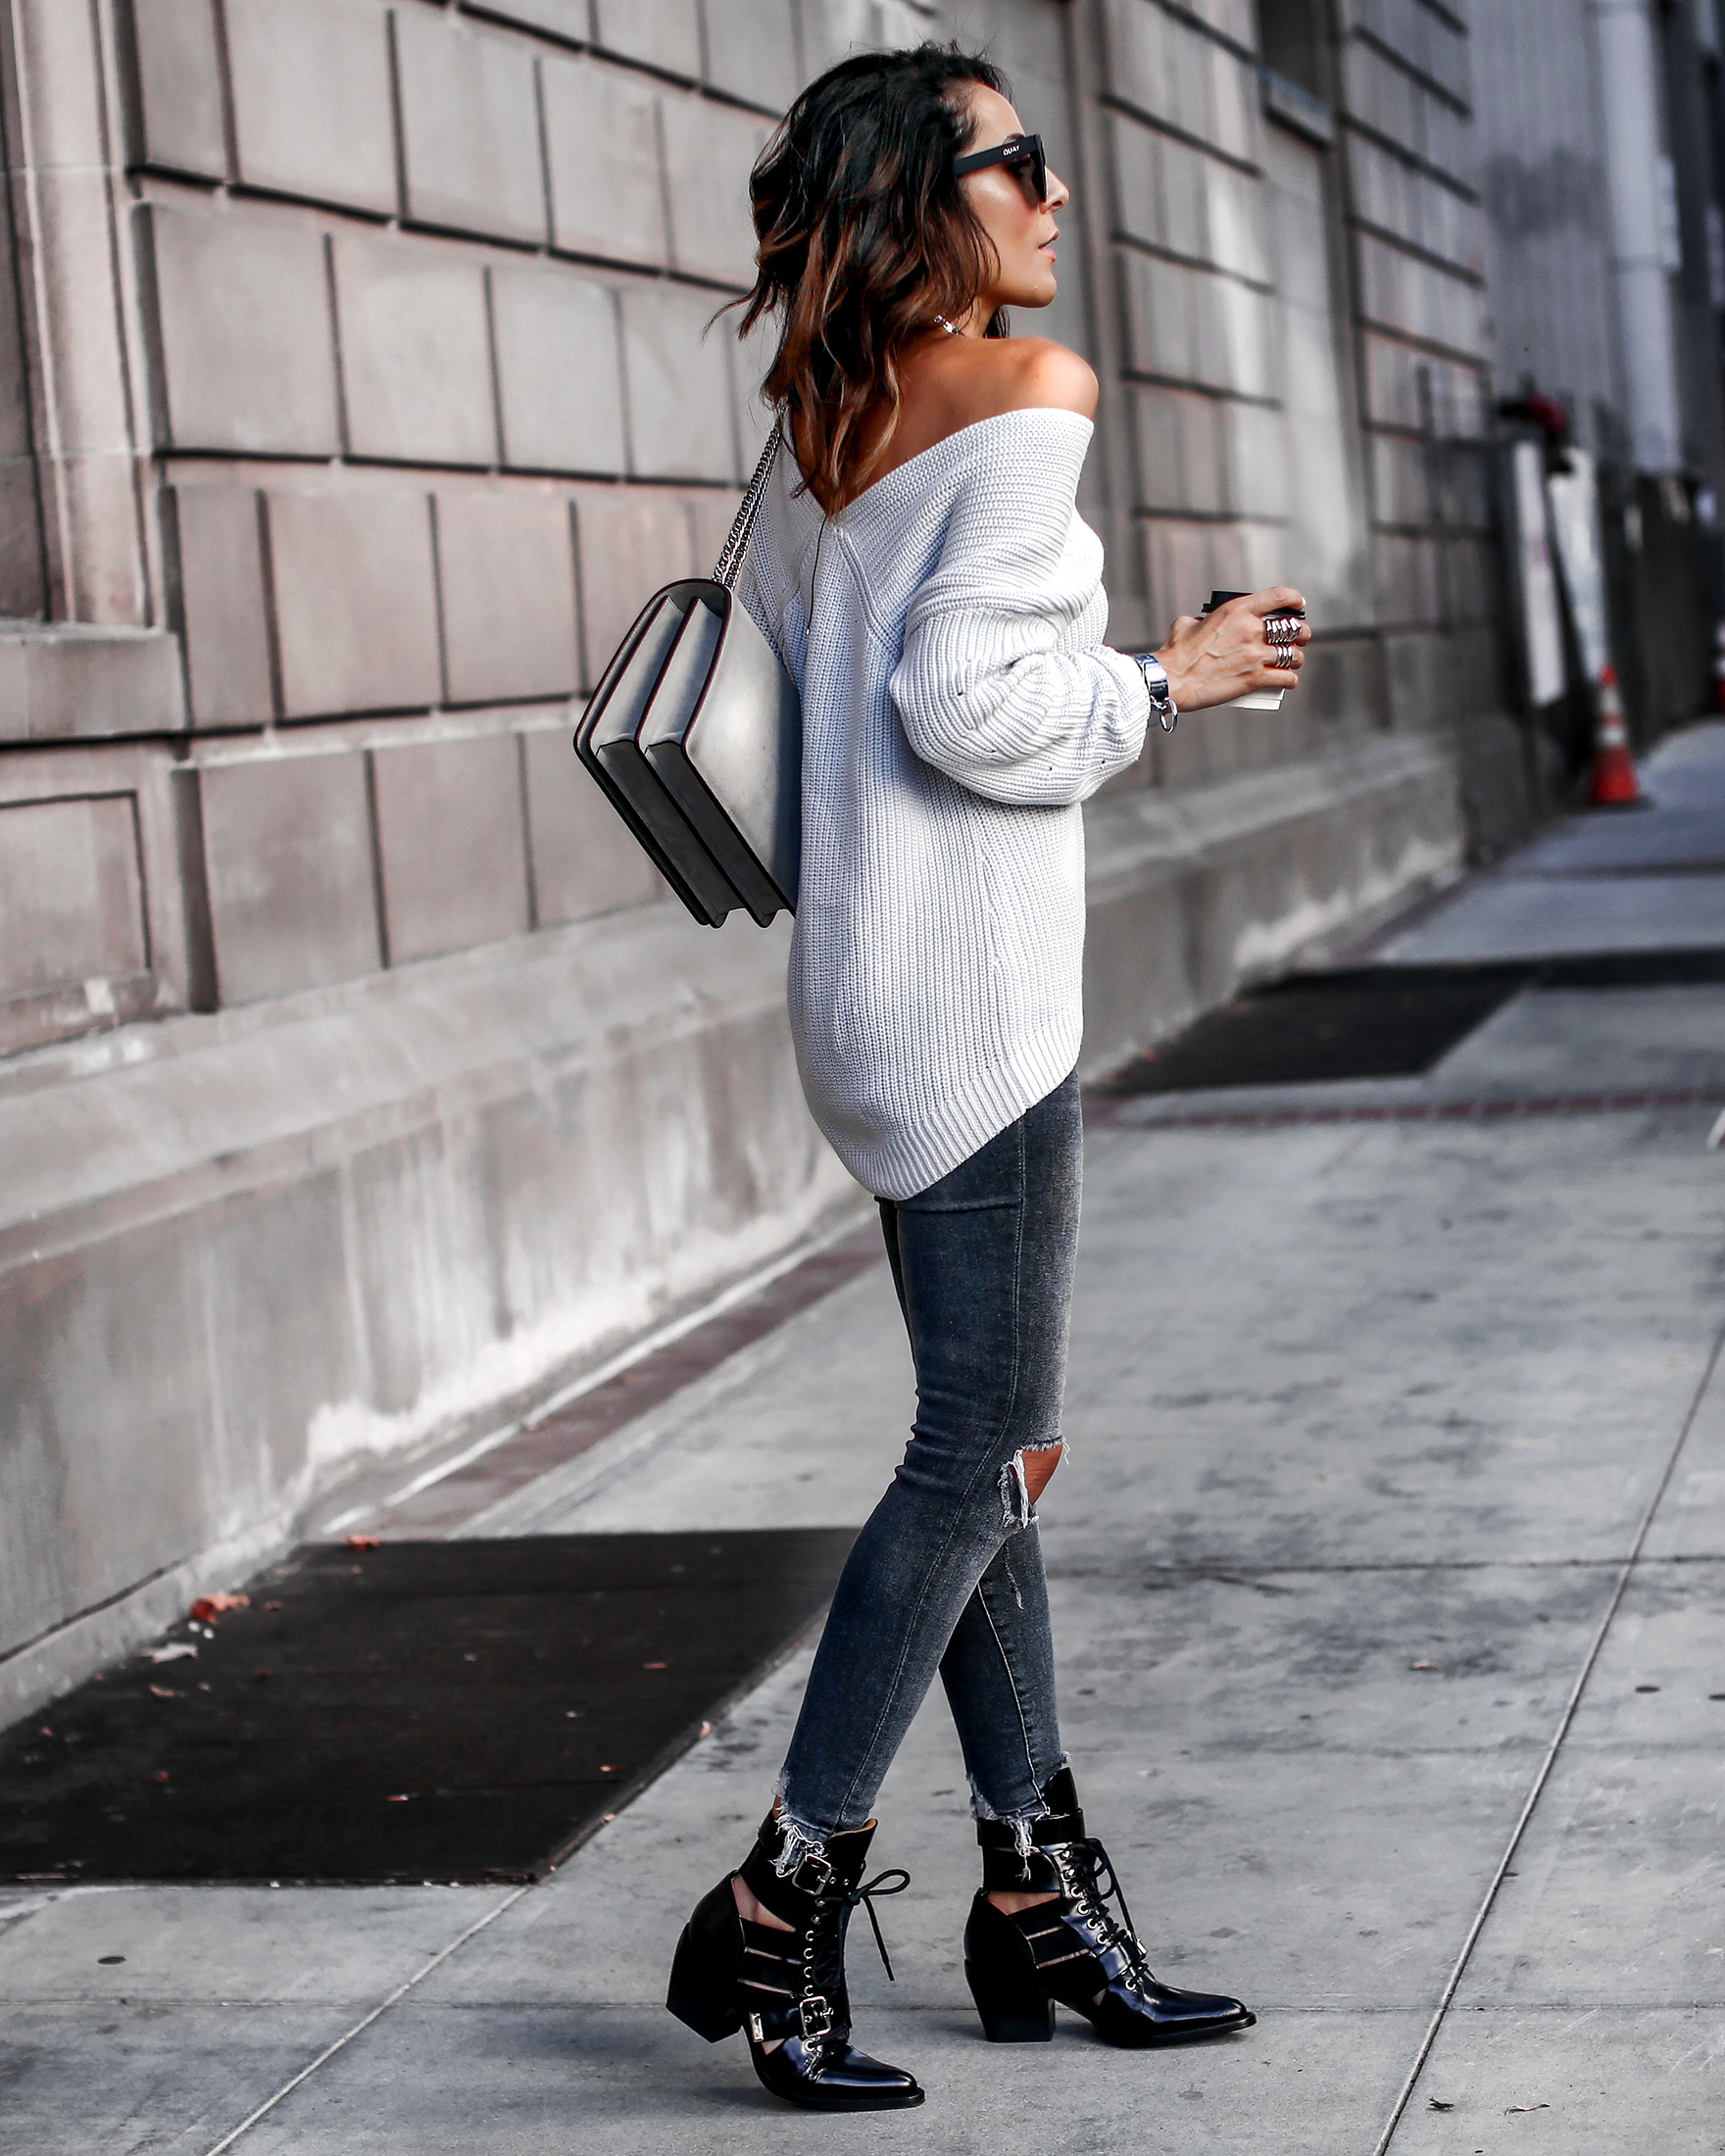 Lucys Whims Brunnette Woman Wearing Off the Shoulder 525 Sweater DL1961 Ripped Jeans  Chloe Rylee Boots Agneel Shoulder Bag.jpg